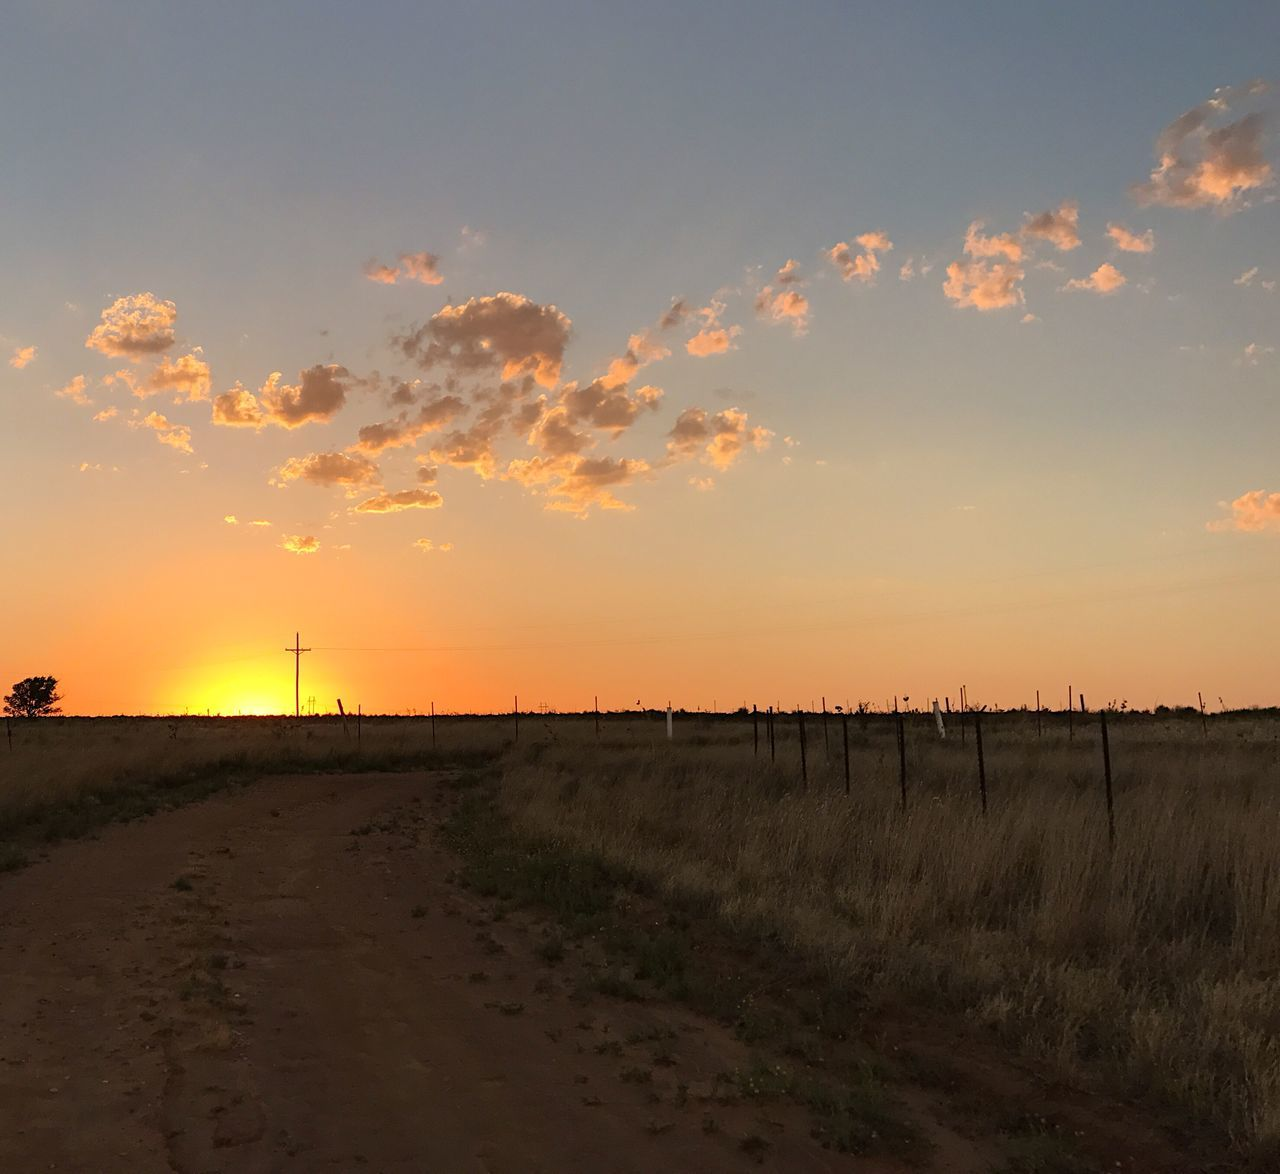 """""""West Texas Salvation"""" There is always a road to the cross, a path to escape evil... Sunset Sky Landscape Scenics Cloud - Sky Beauty In Nature Outdoors Rural Scene West Texas West Texas Skies West Texas Sunset West Texas Landscape Salvation  Escape"""